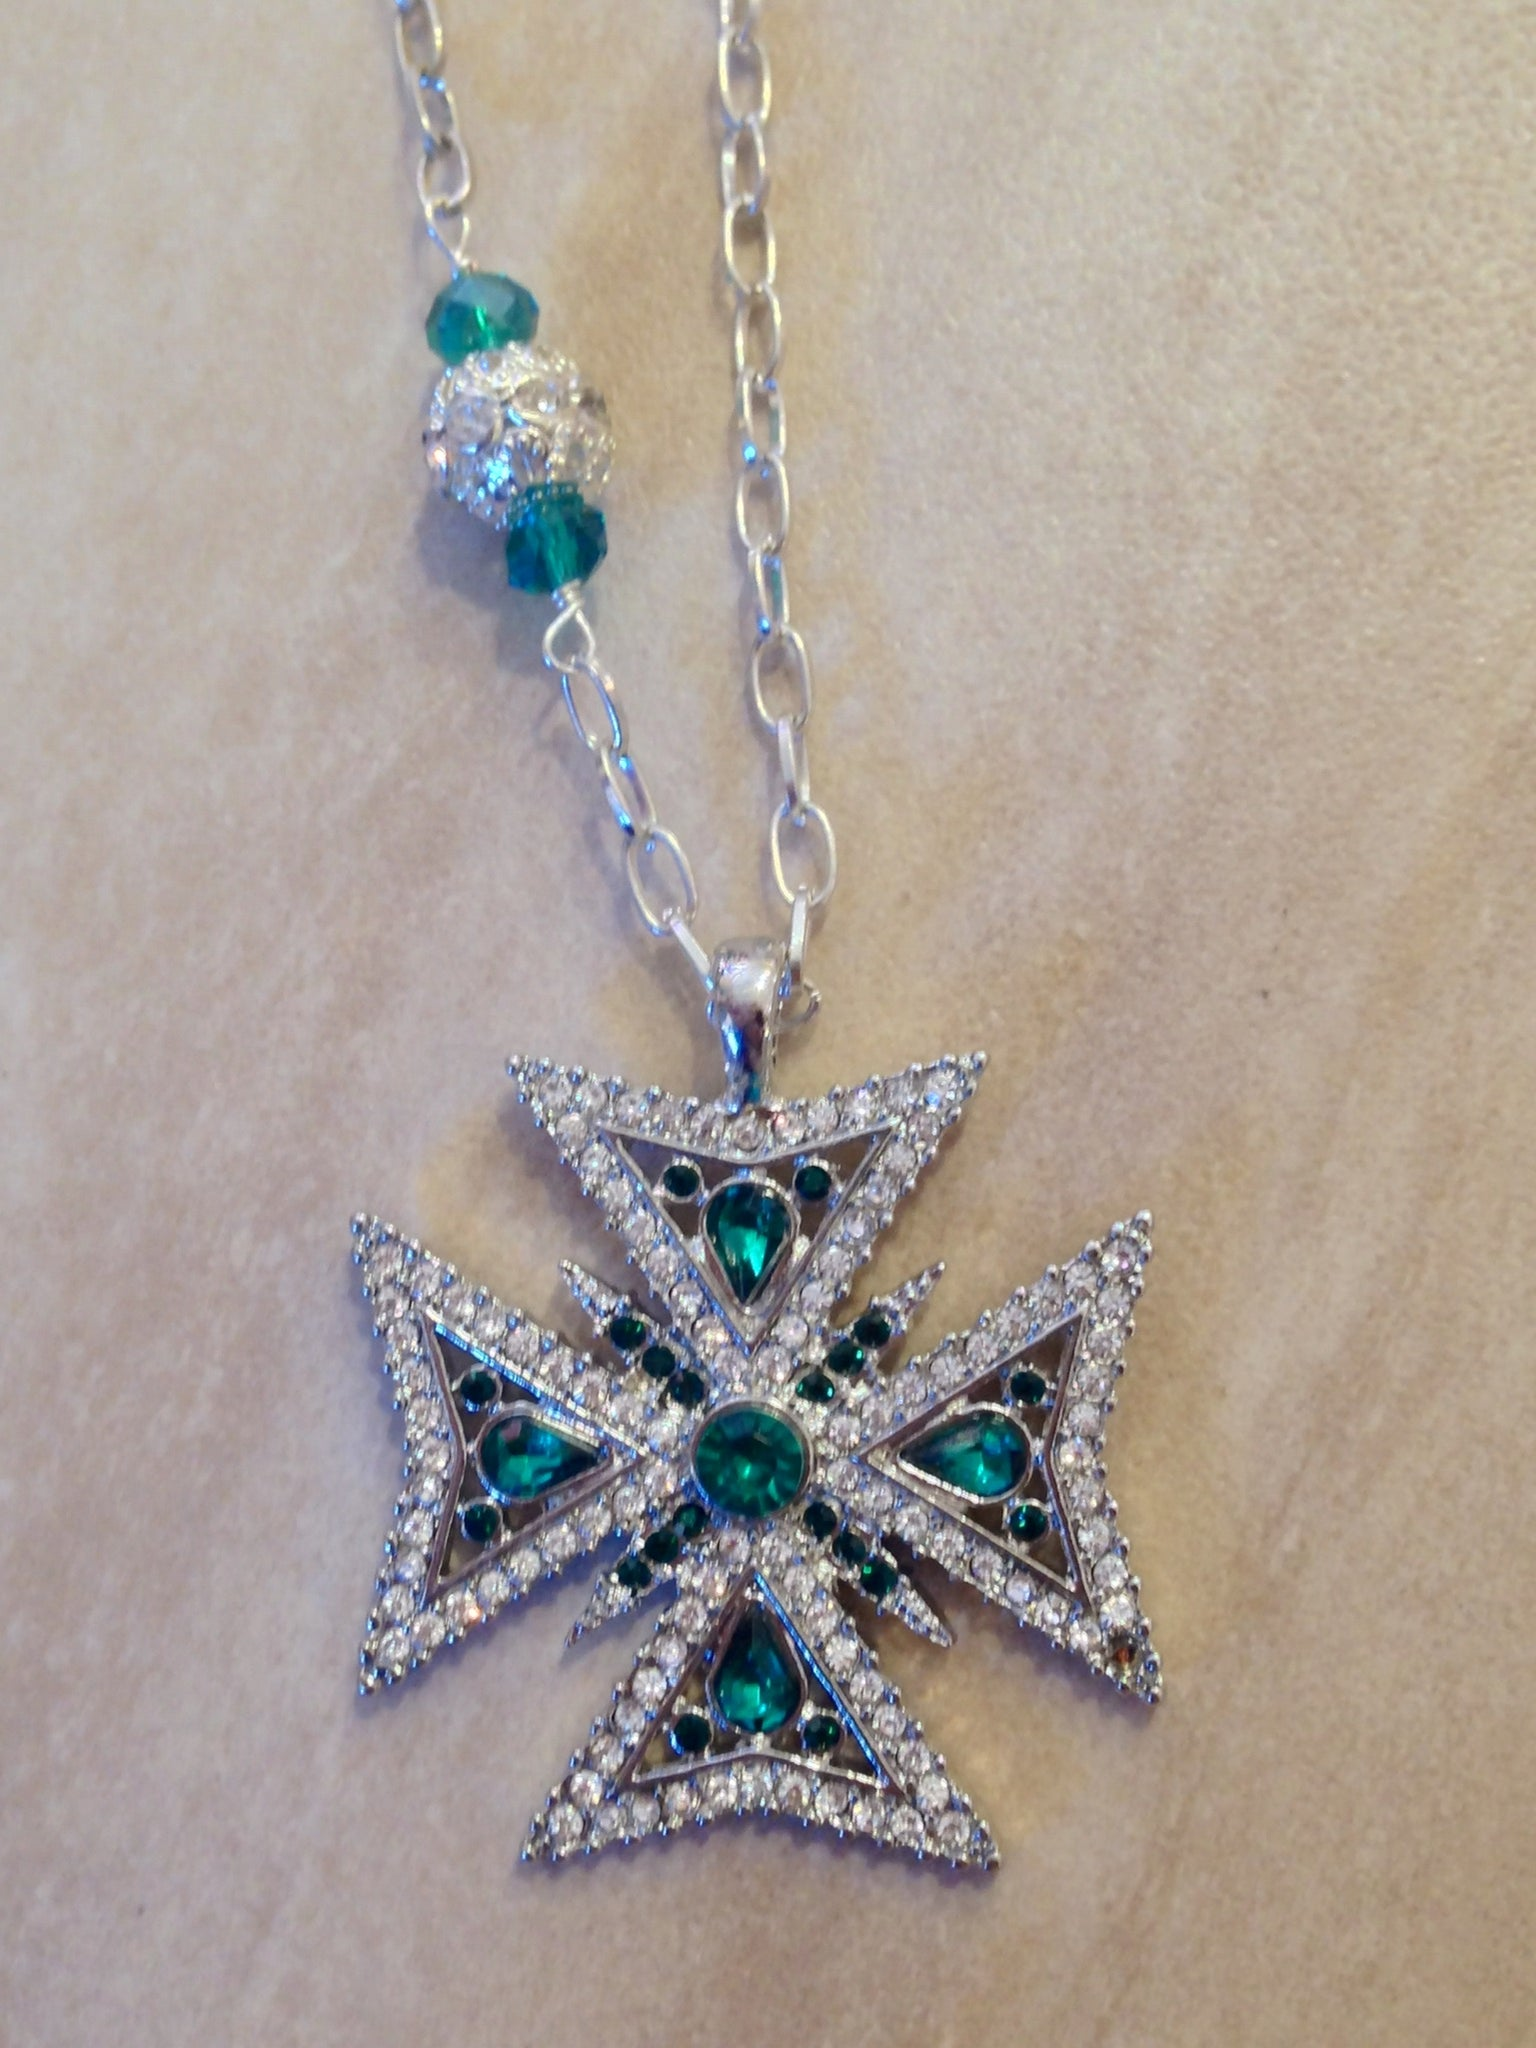 Crystal and Emerald studded Maltese cross necklace.